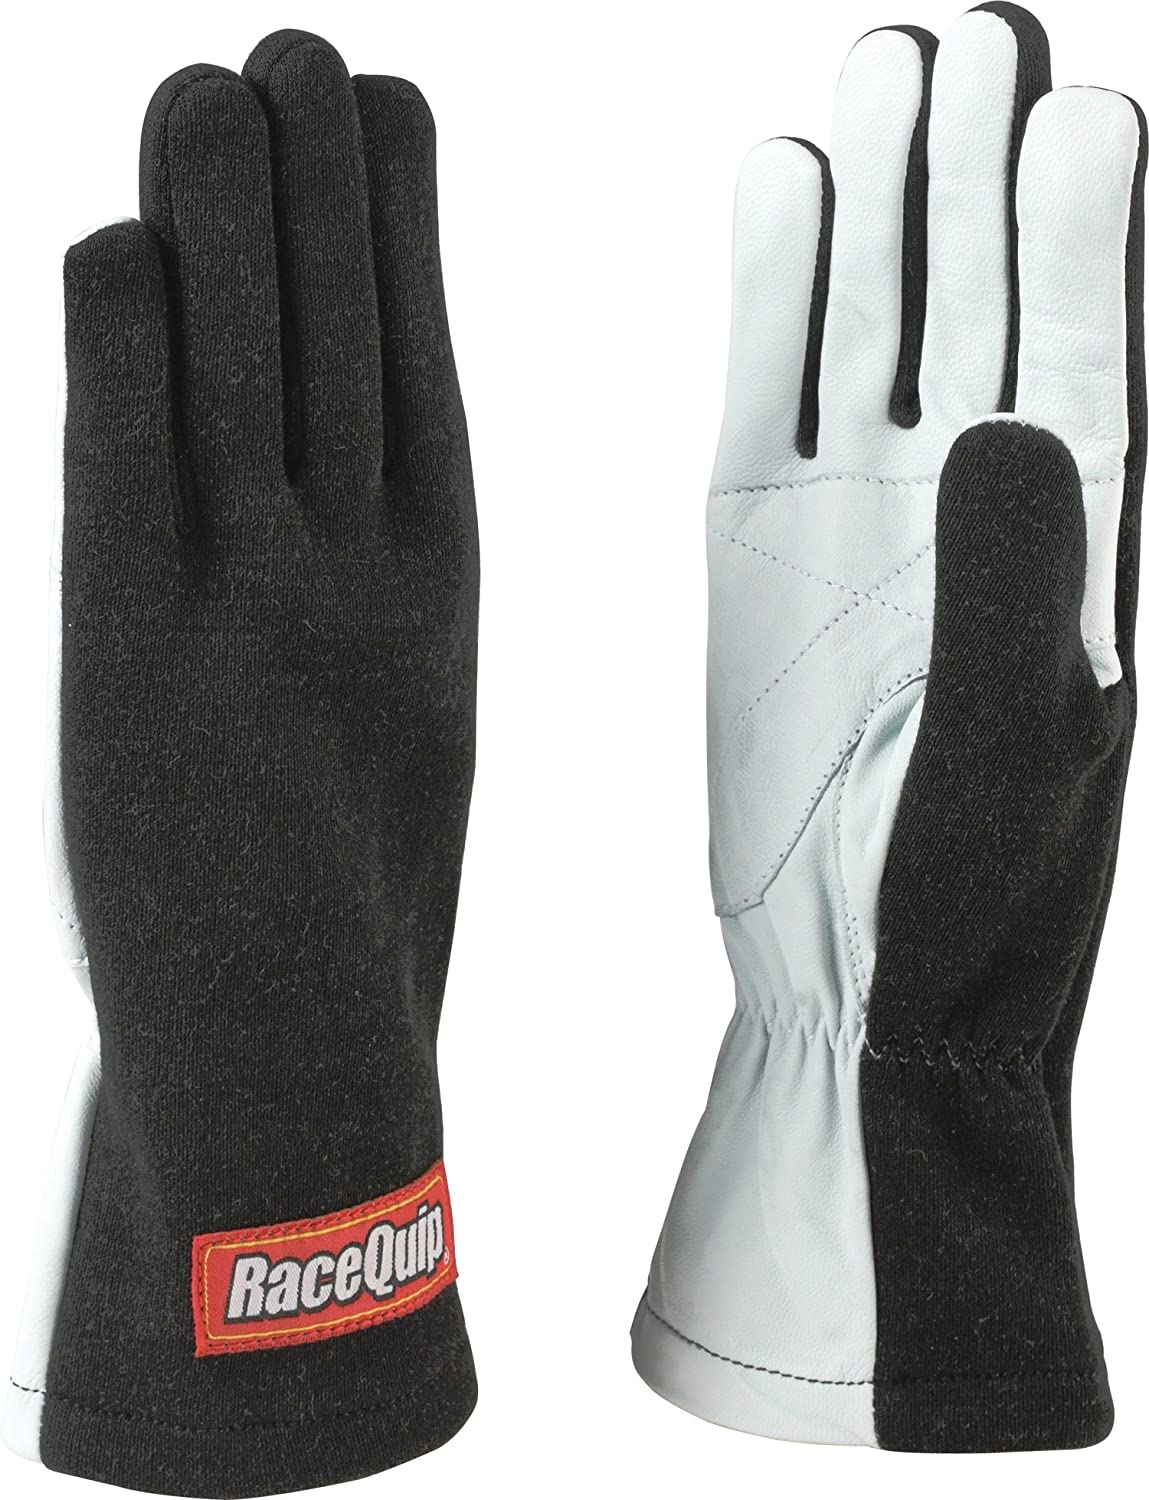 Driving gloves racing - Amazon Com Racequip 350005 350 Series Large Black Single Layer Driving Gloves Automotive